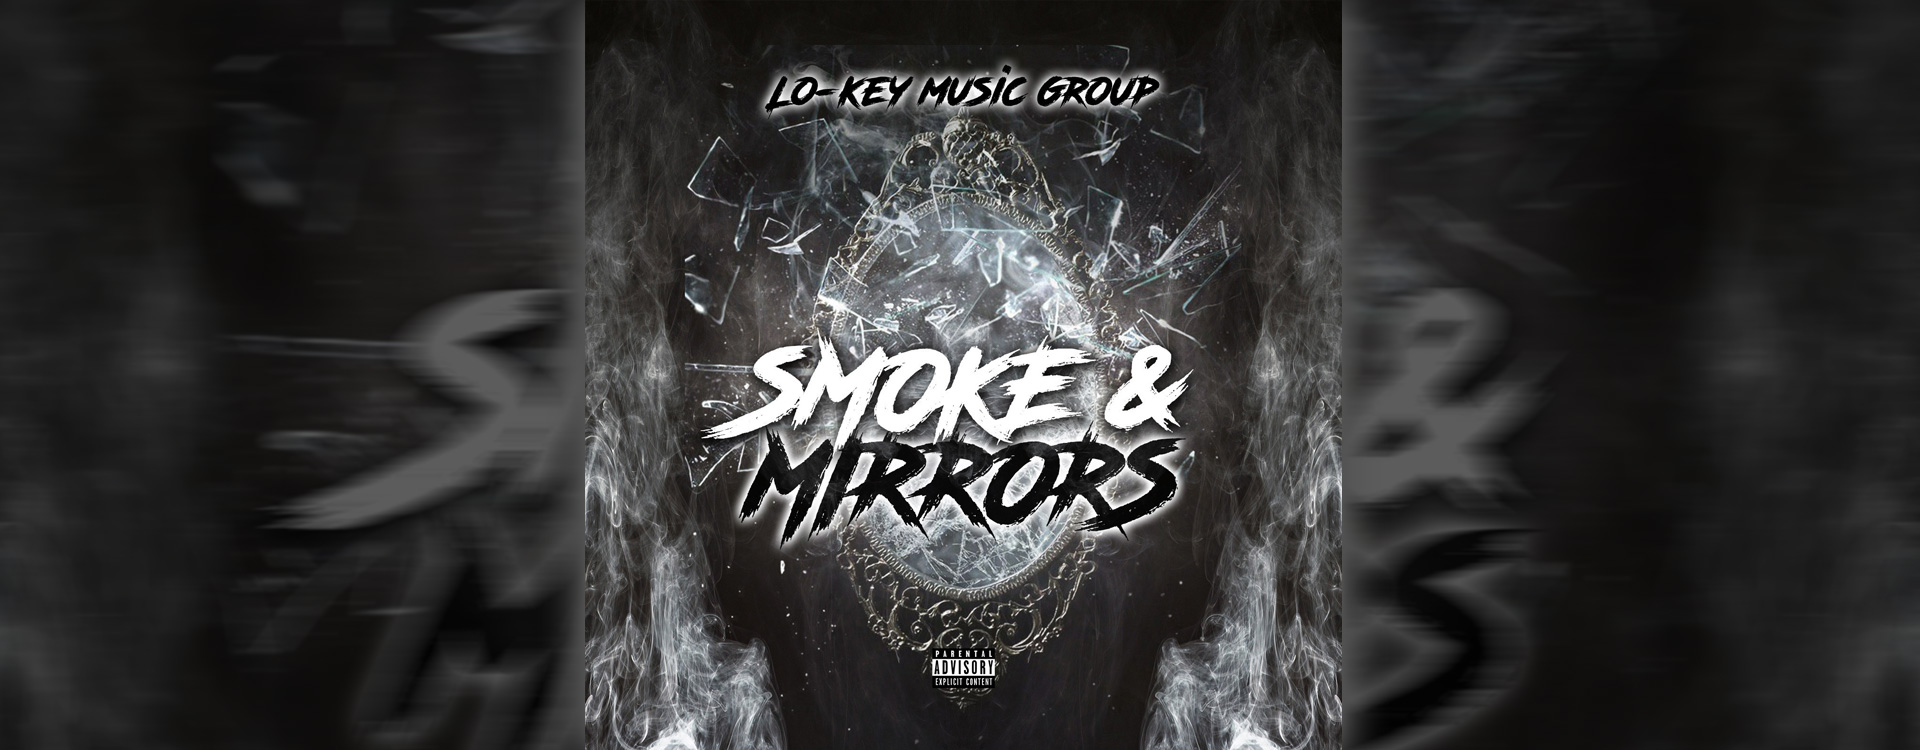 Slider-Smoke-Mirror